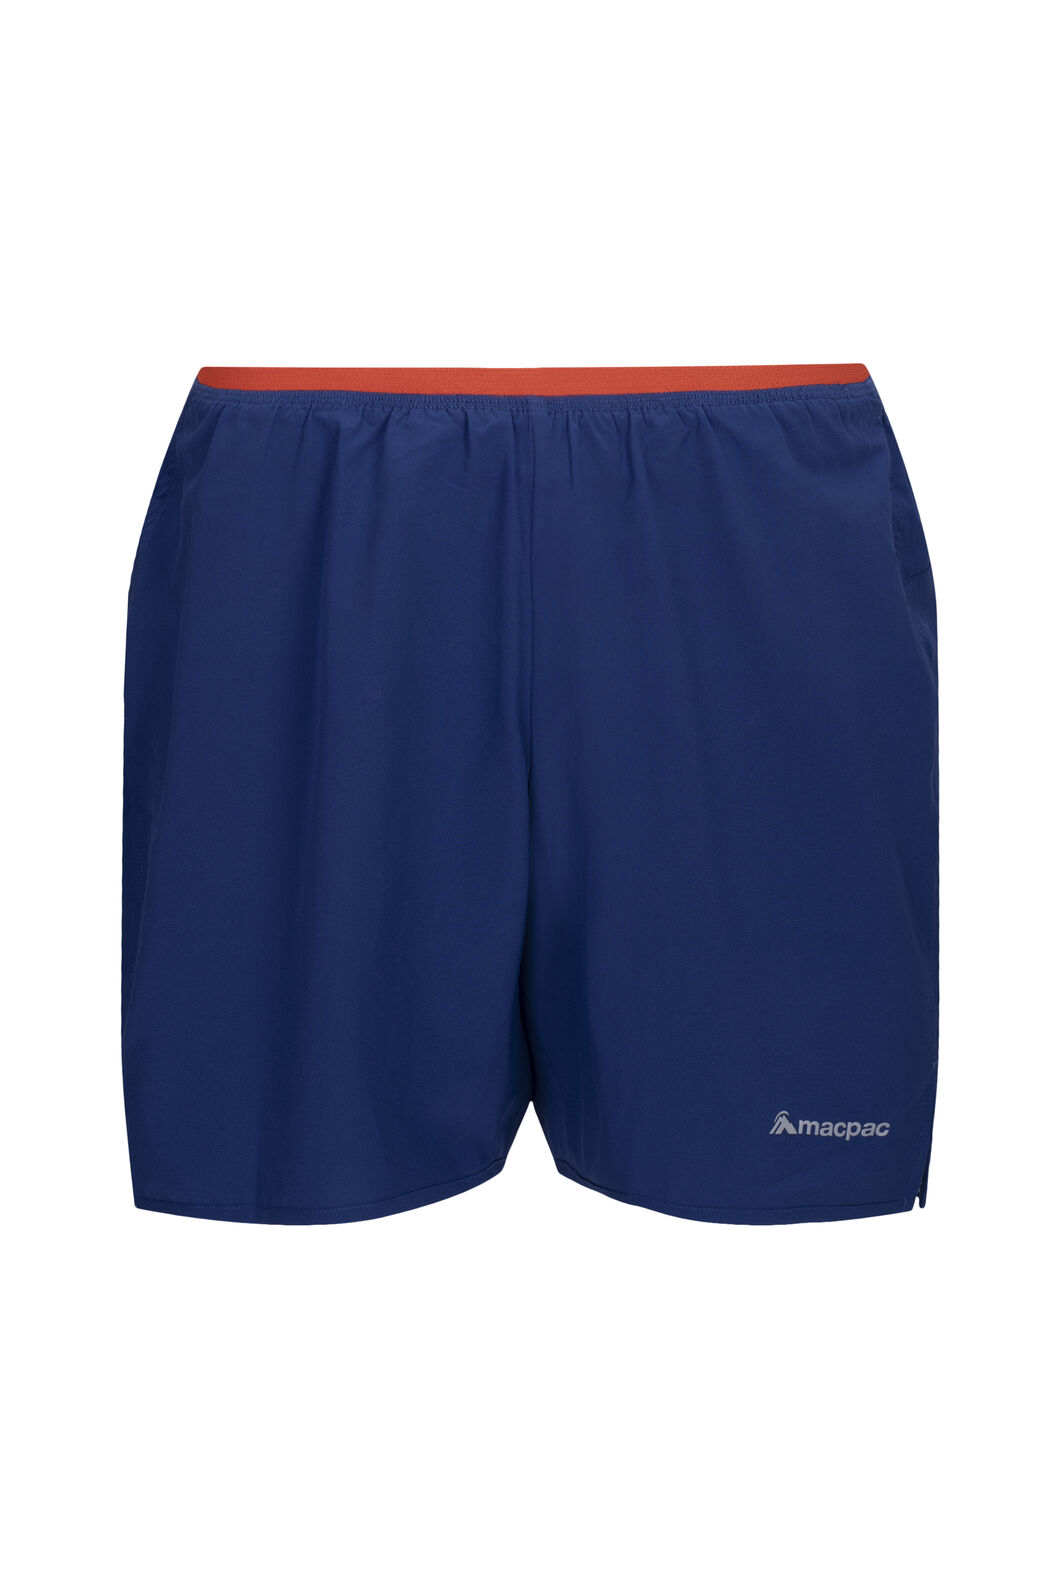 Macpac Caples Trail Shorts — Men's, Blueprint, hi-res